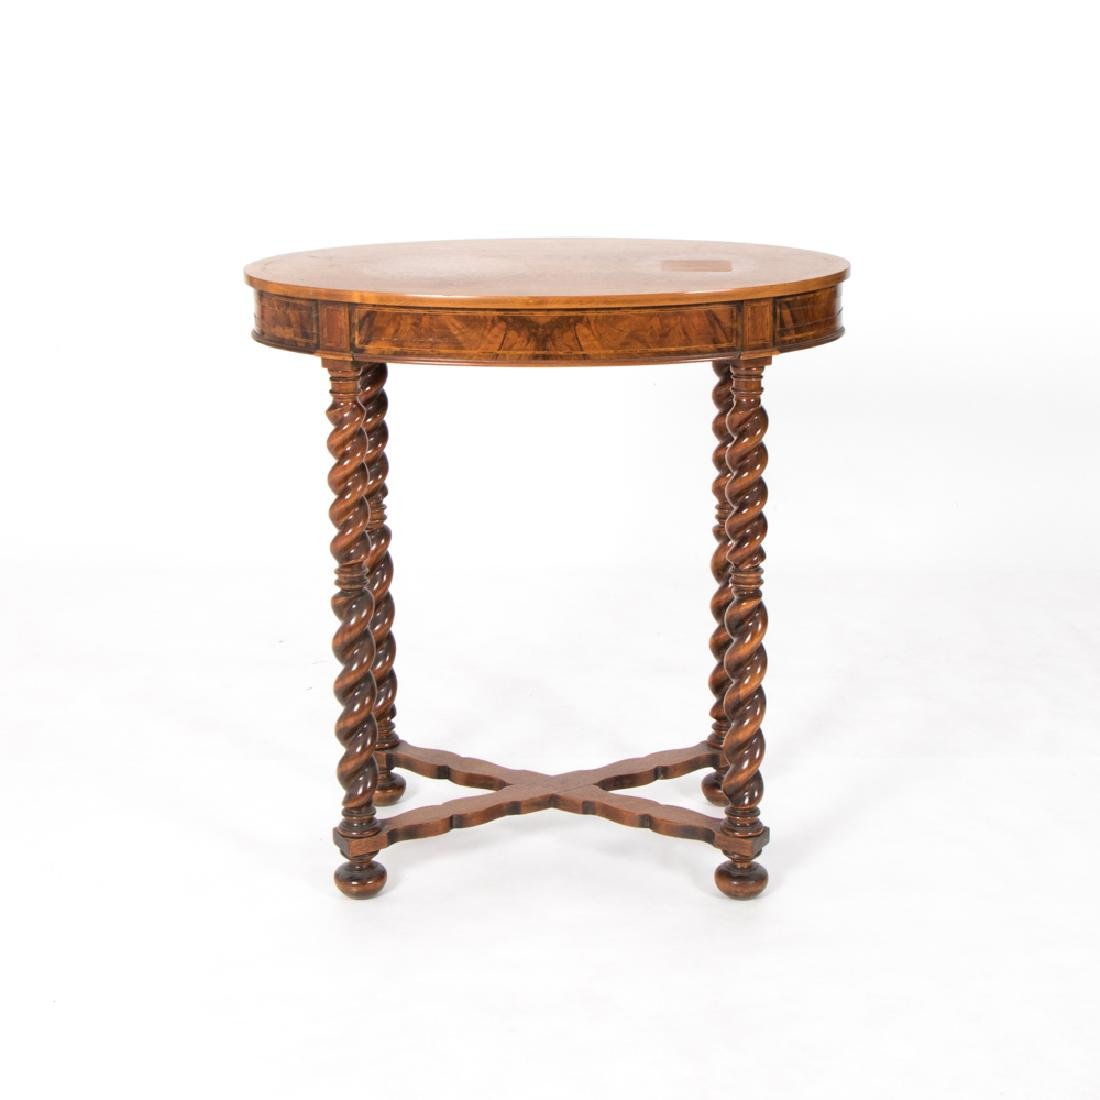 A Georgian Style Mahogany Oval Side Table, 19th